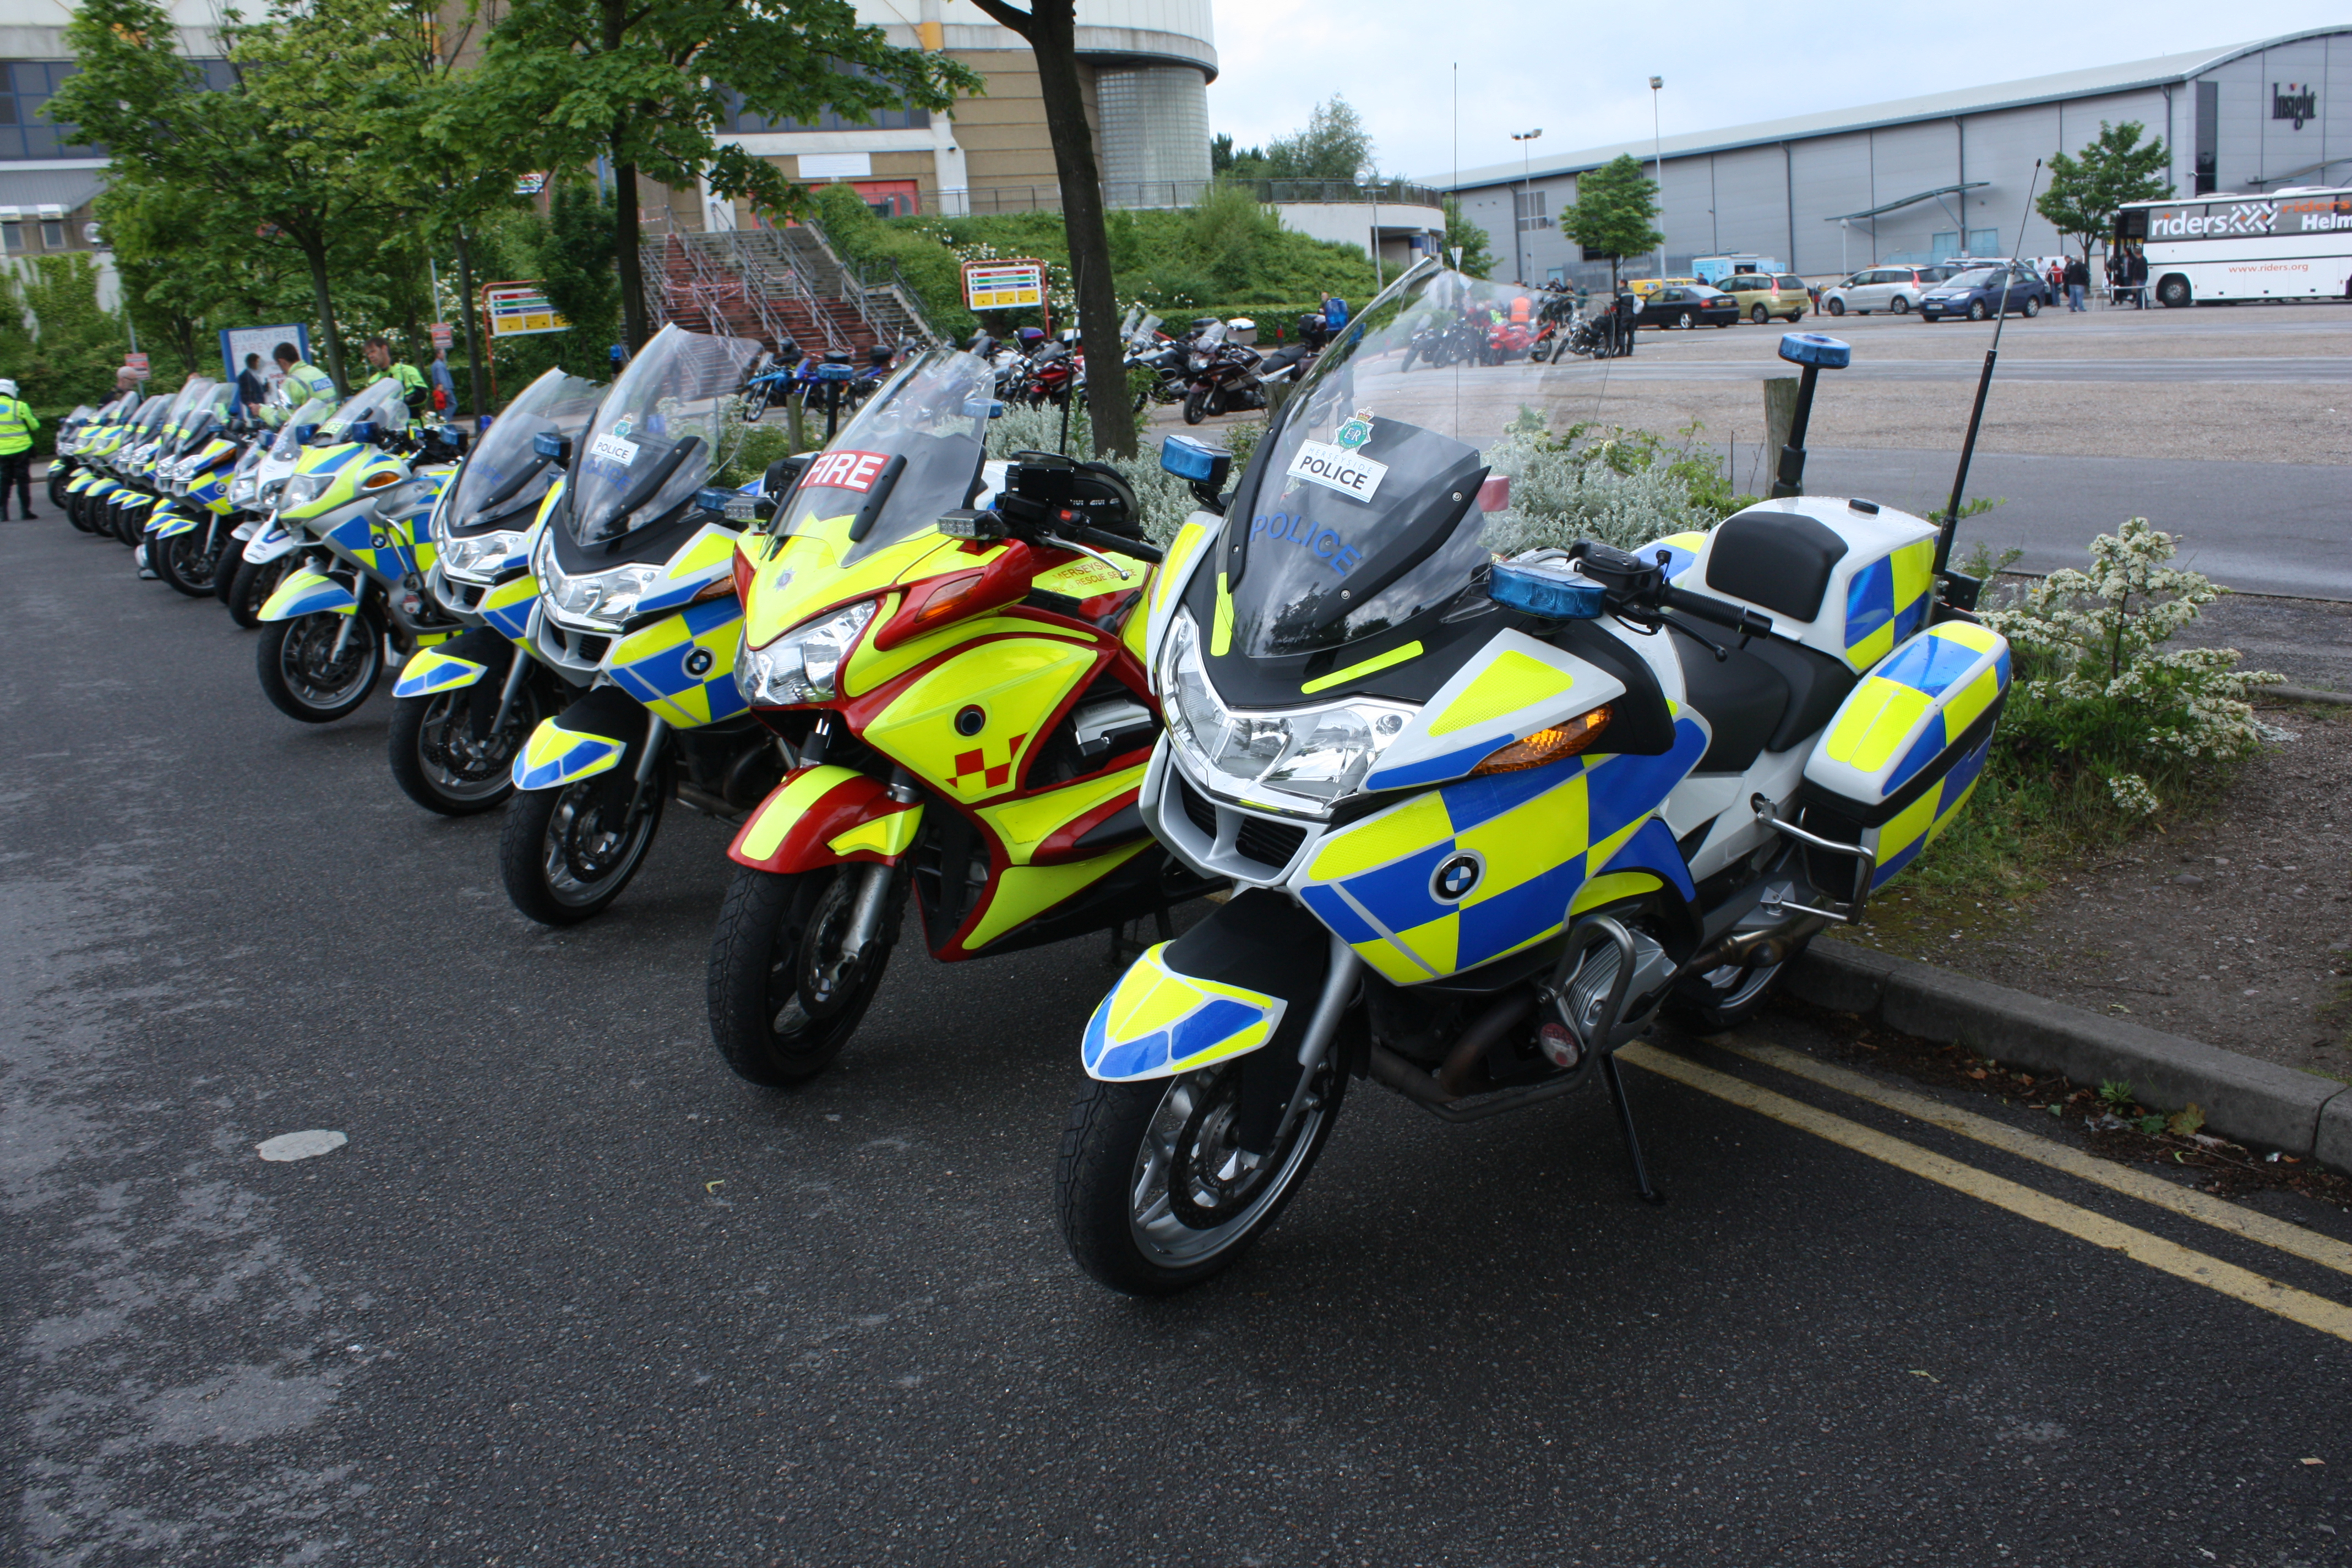 Bmw Police Motorcycle Lease Program